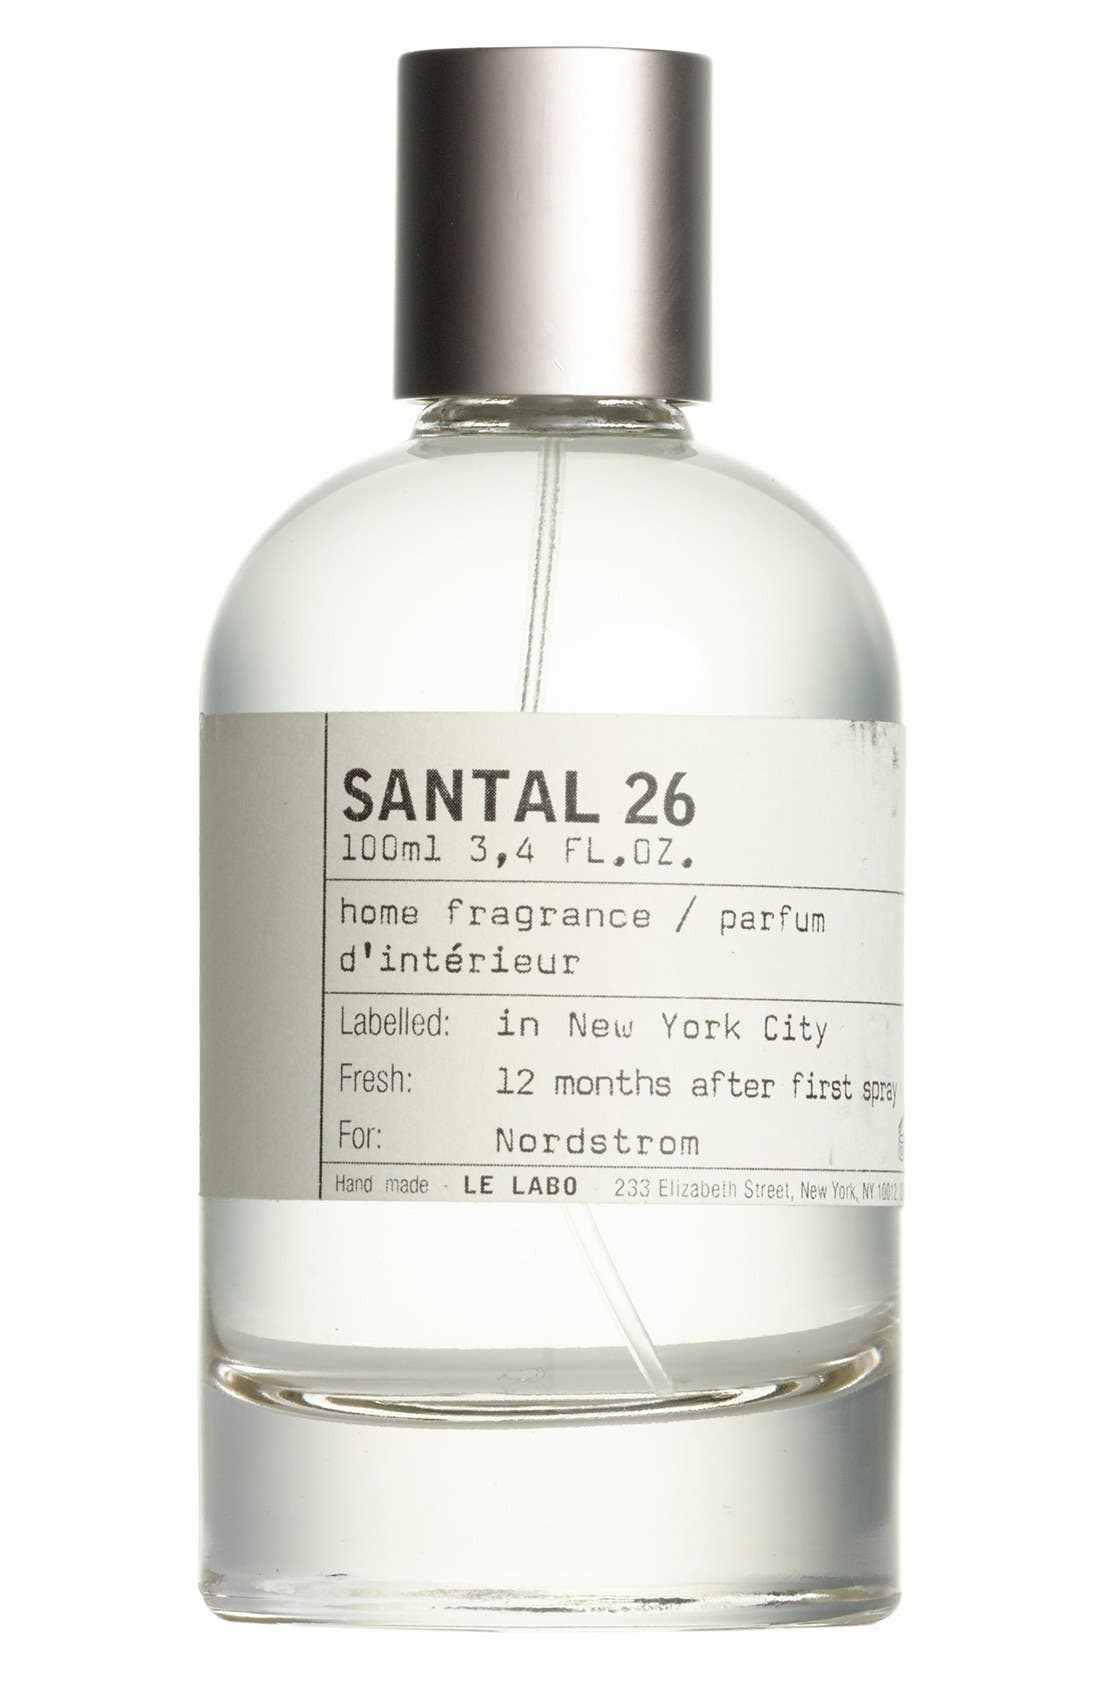 Le Labo 'Santal 26' Home Fragrance Spray